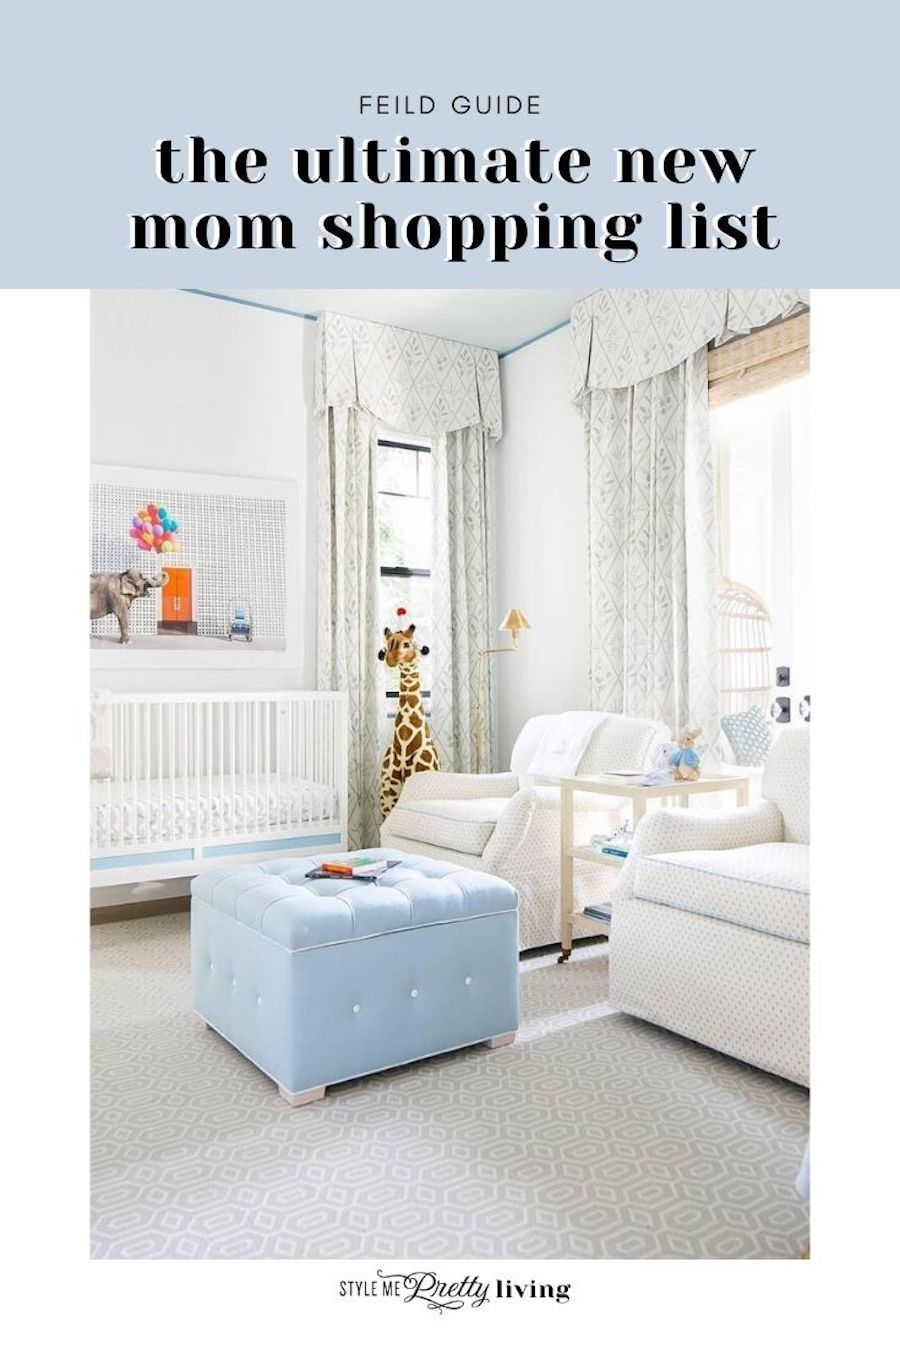 The Ultimate New Mom Shopping List